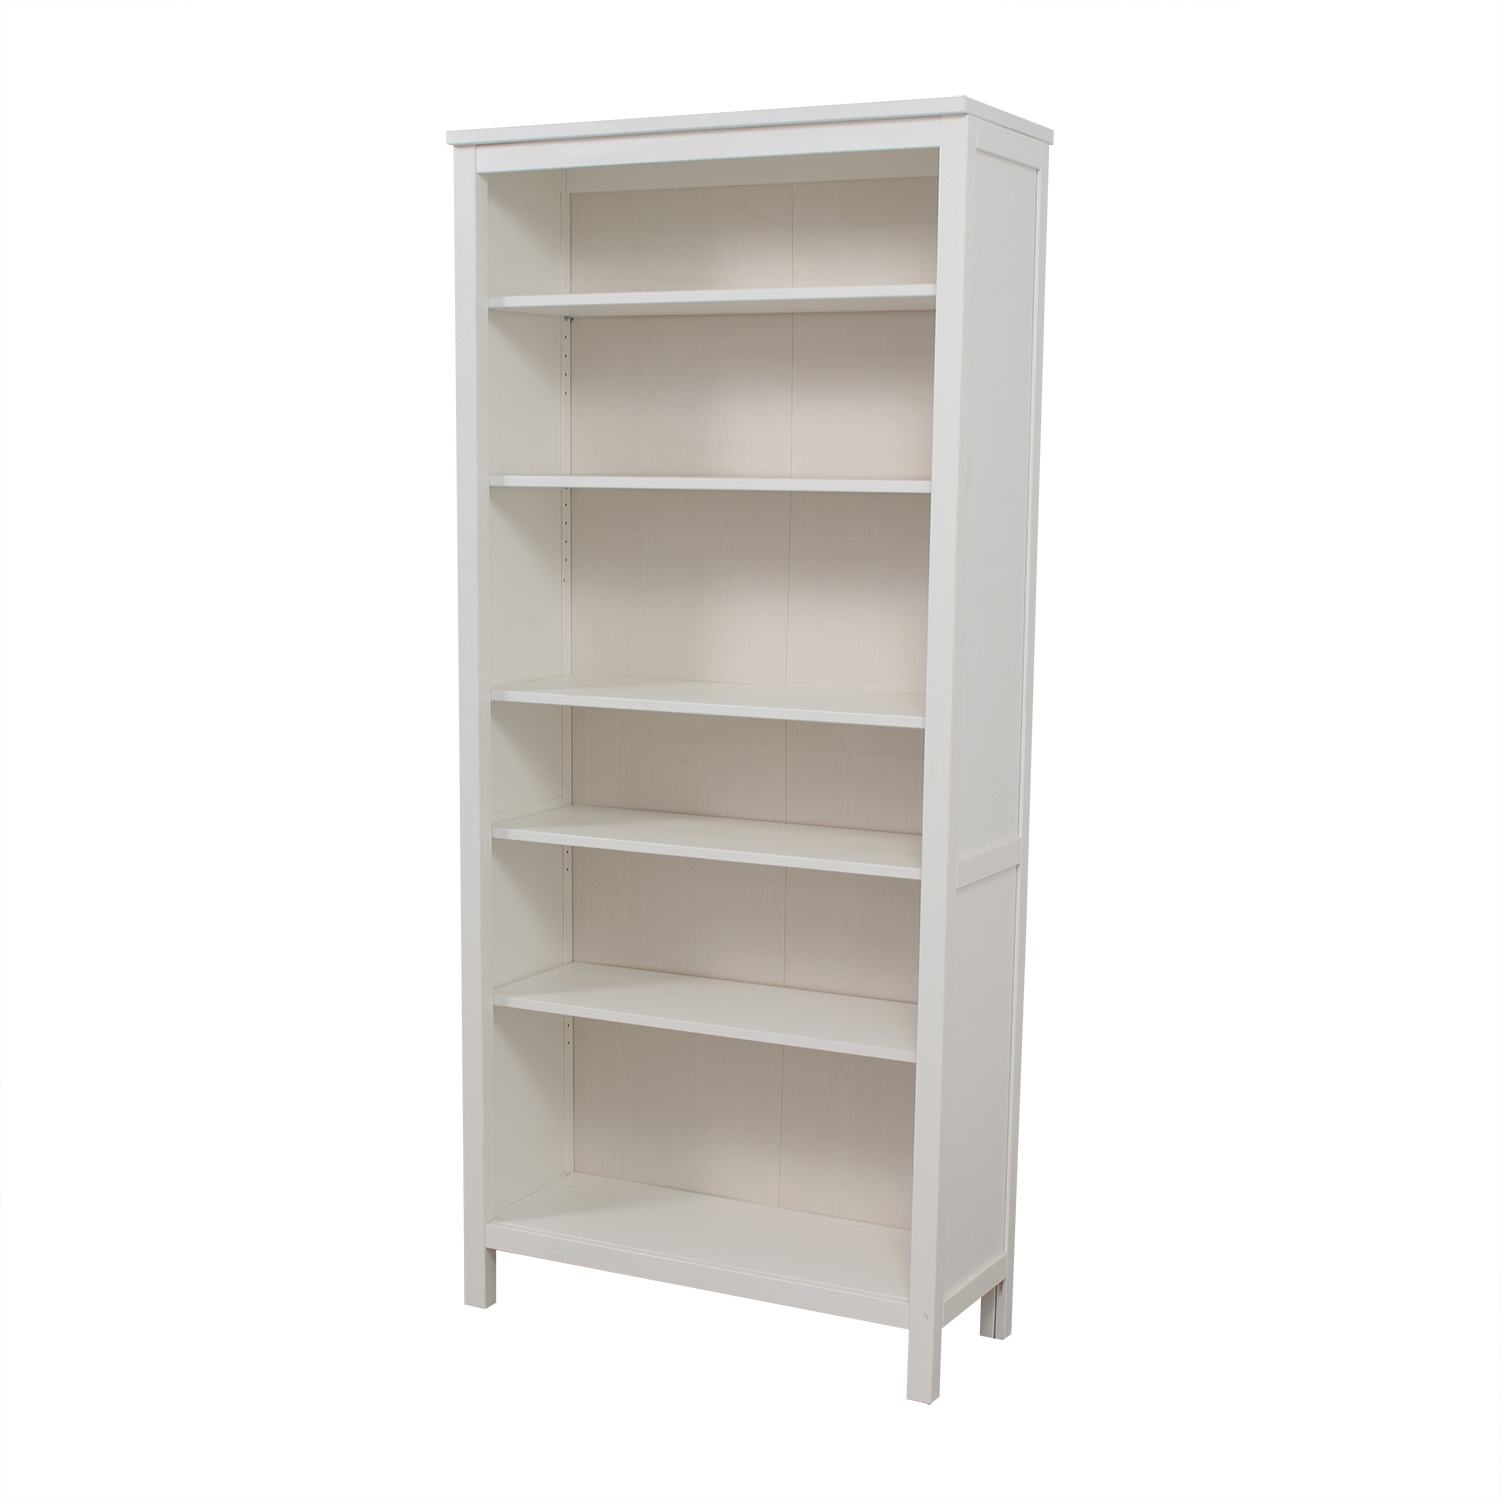 53 off ikea ikea white hemnes bookshelf storage for Ikea comodino hemnes